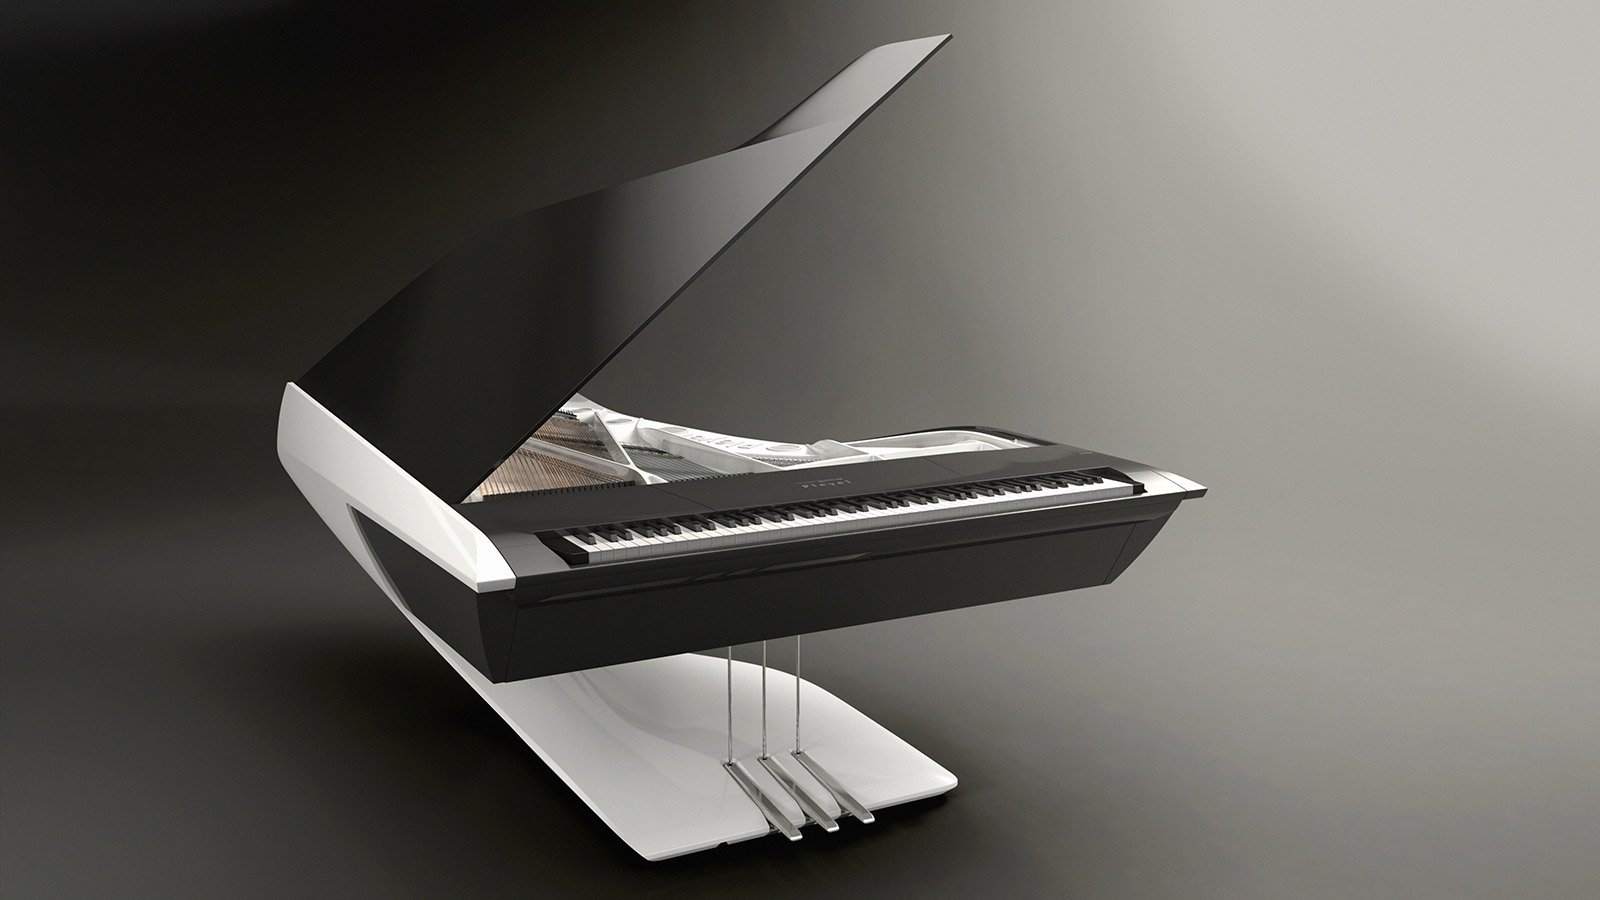 Grand-Piano-Concept-by-Peugeot-Design-Lab-01